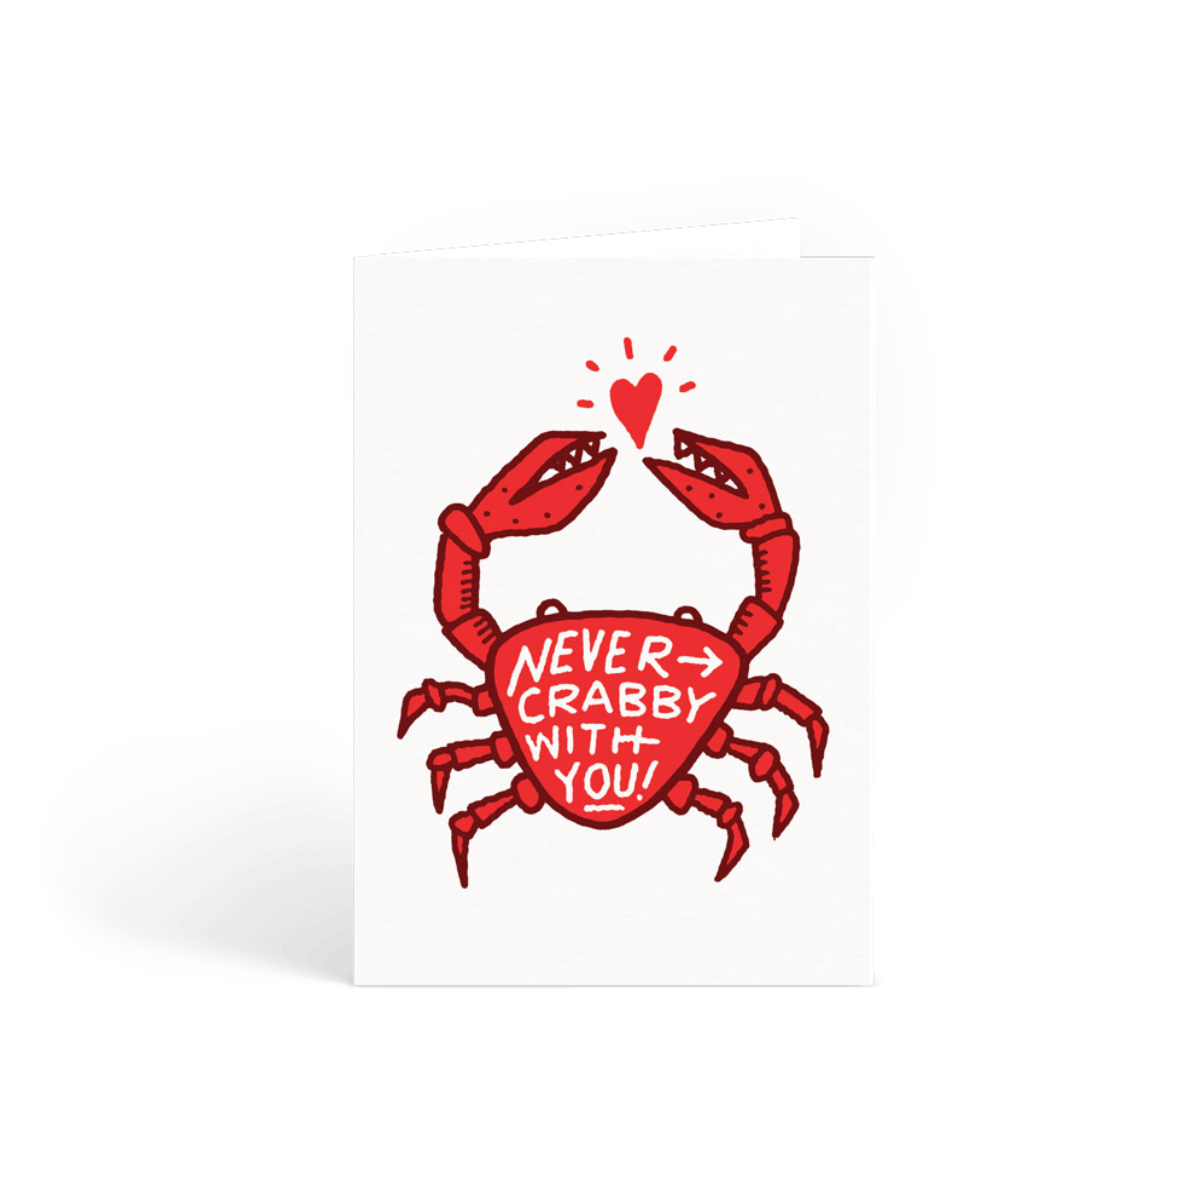 Https%3a%2f%2fwww.papier.com%2fproduct image%2f16332%2f2%2fnever crabby with you 4317 front 1484738916.png?ixlib=rb 1.1